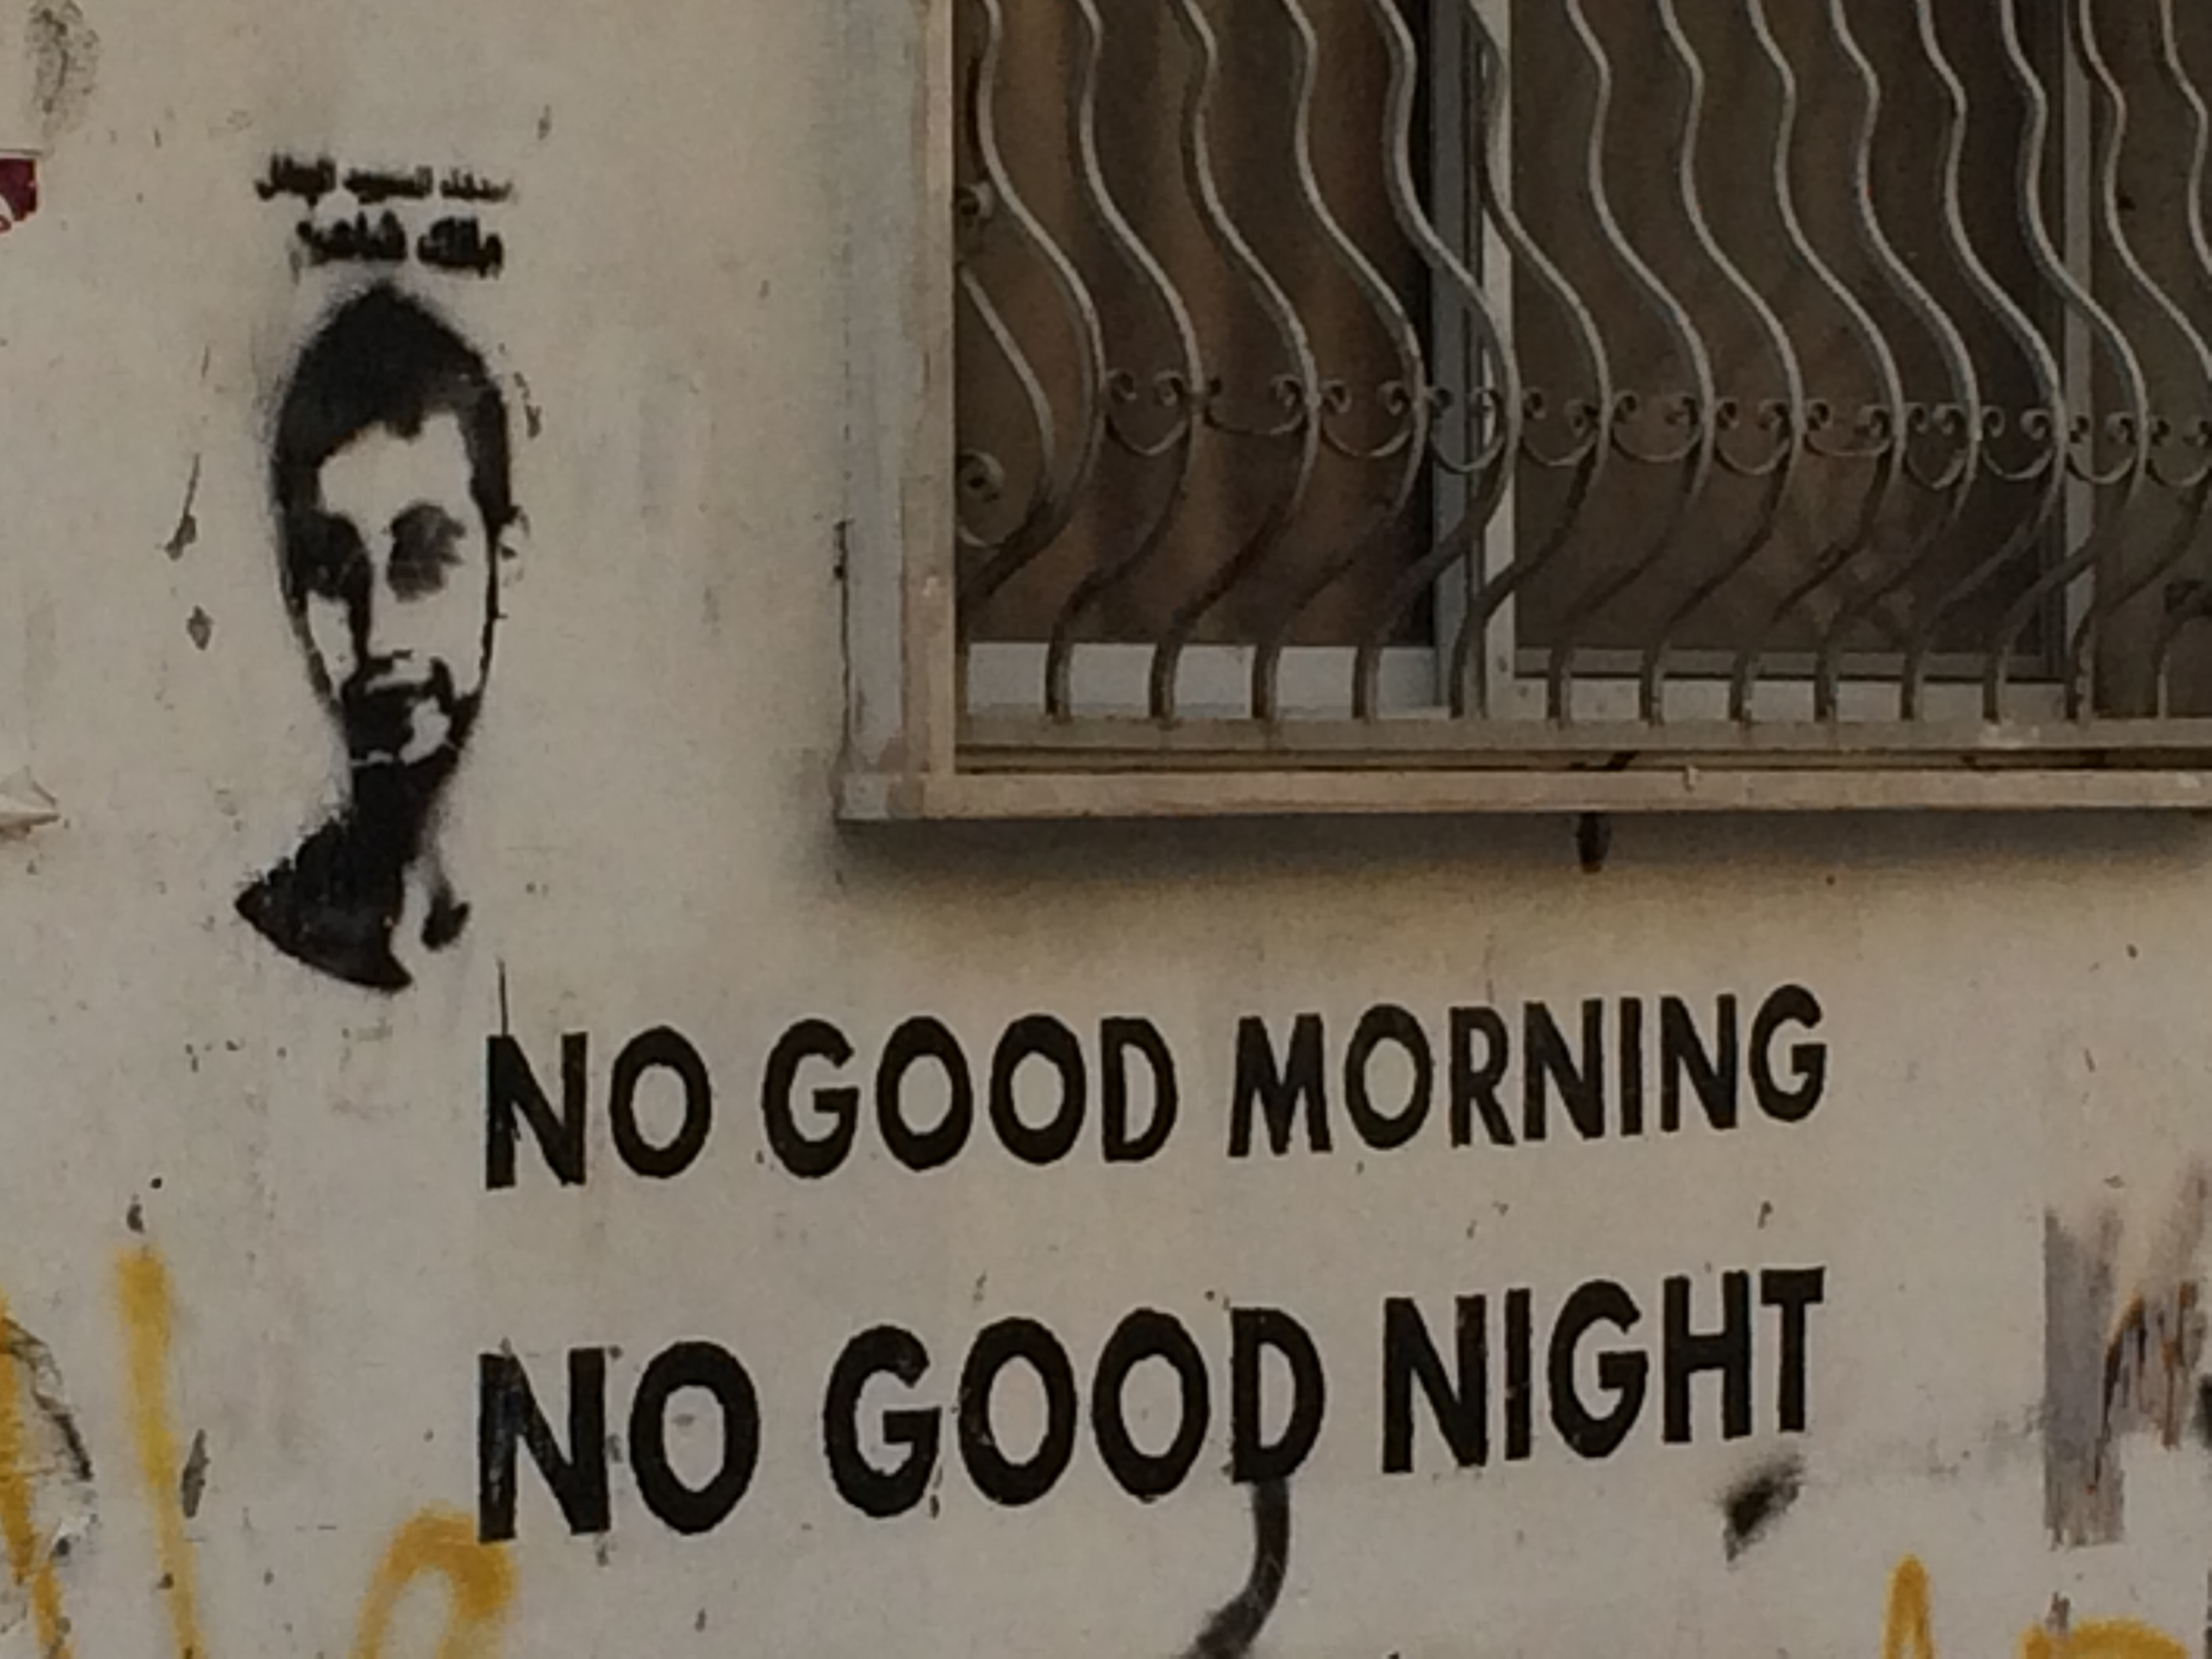 """No good morning, no good night"" written on graffiti wall in Palestine"